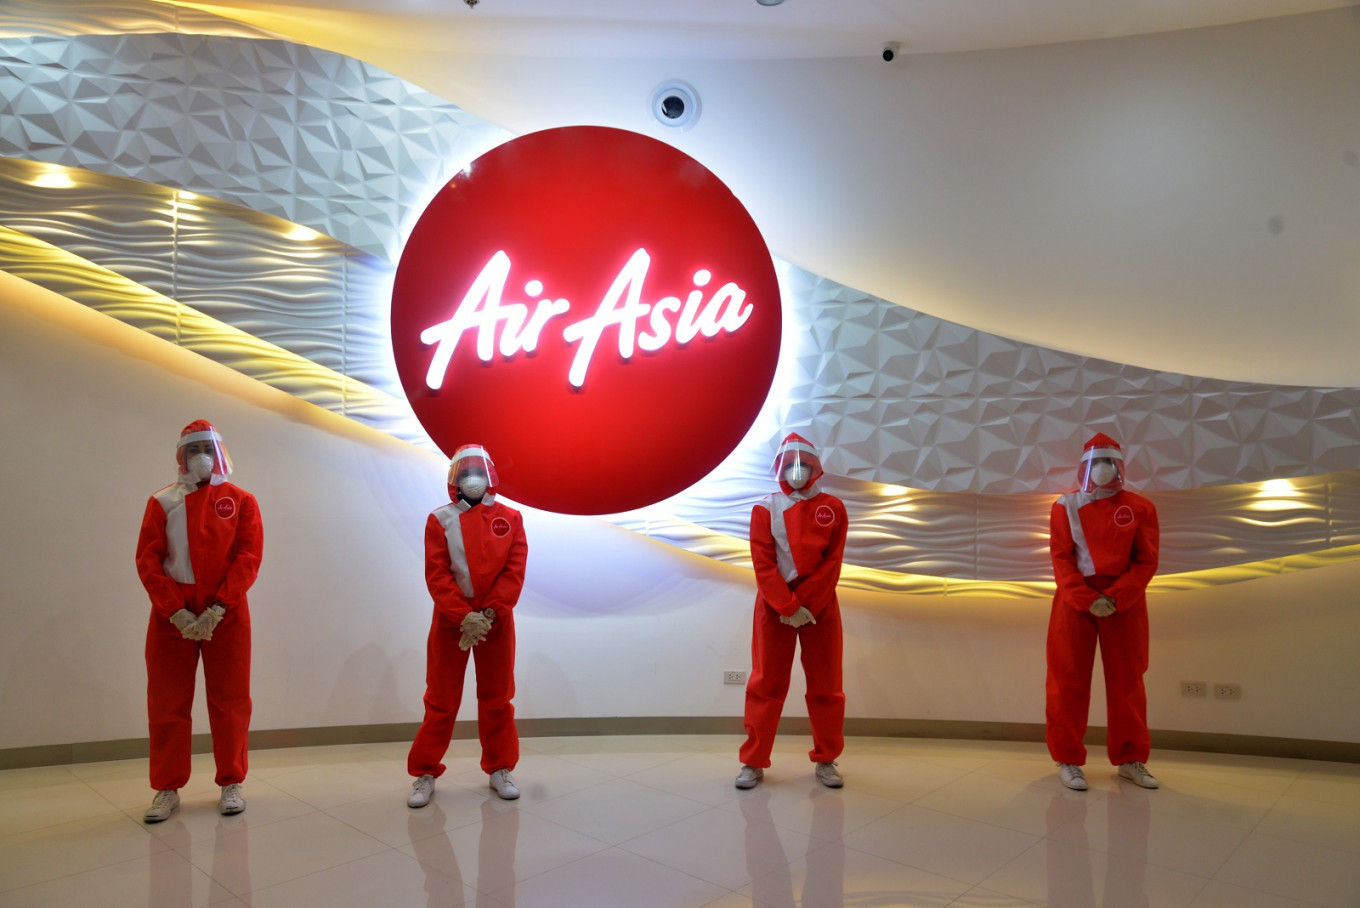 Amid the COVID-19 pandemic, low-cost carrier AirAsia introduced on Friday new personal protective equipment (PPE) for its cabin crews. Image: AirAsia Philippines/File